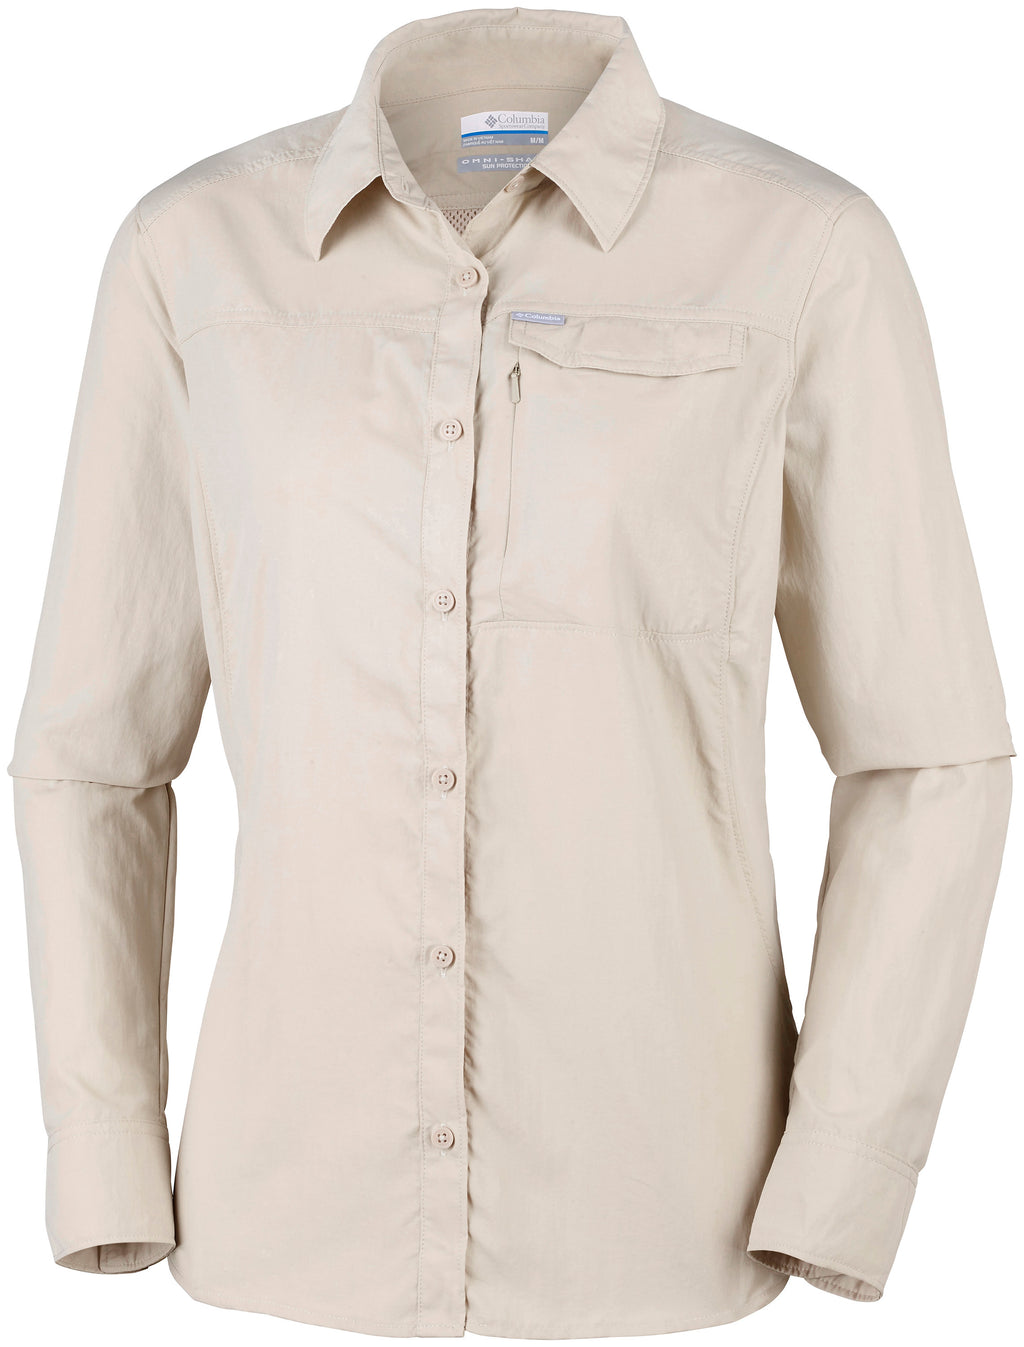 Columbia Women's Silver Ridge 2.0 LS promotional Shirt